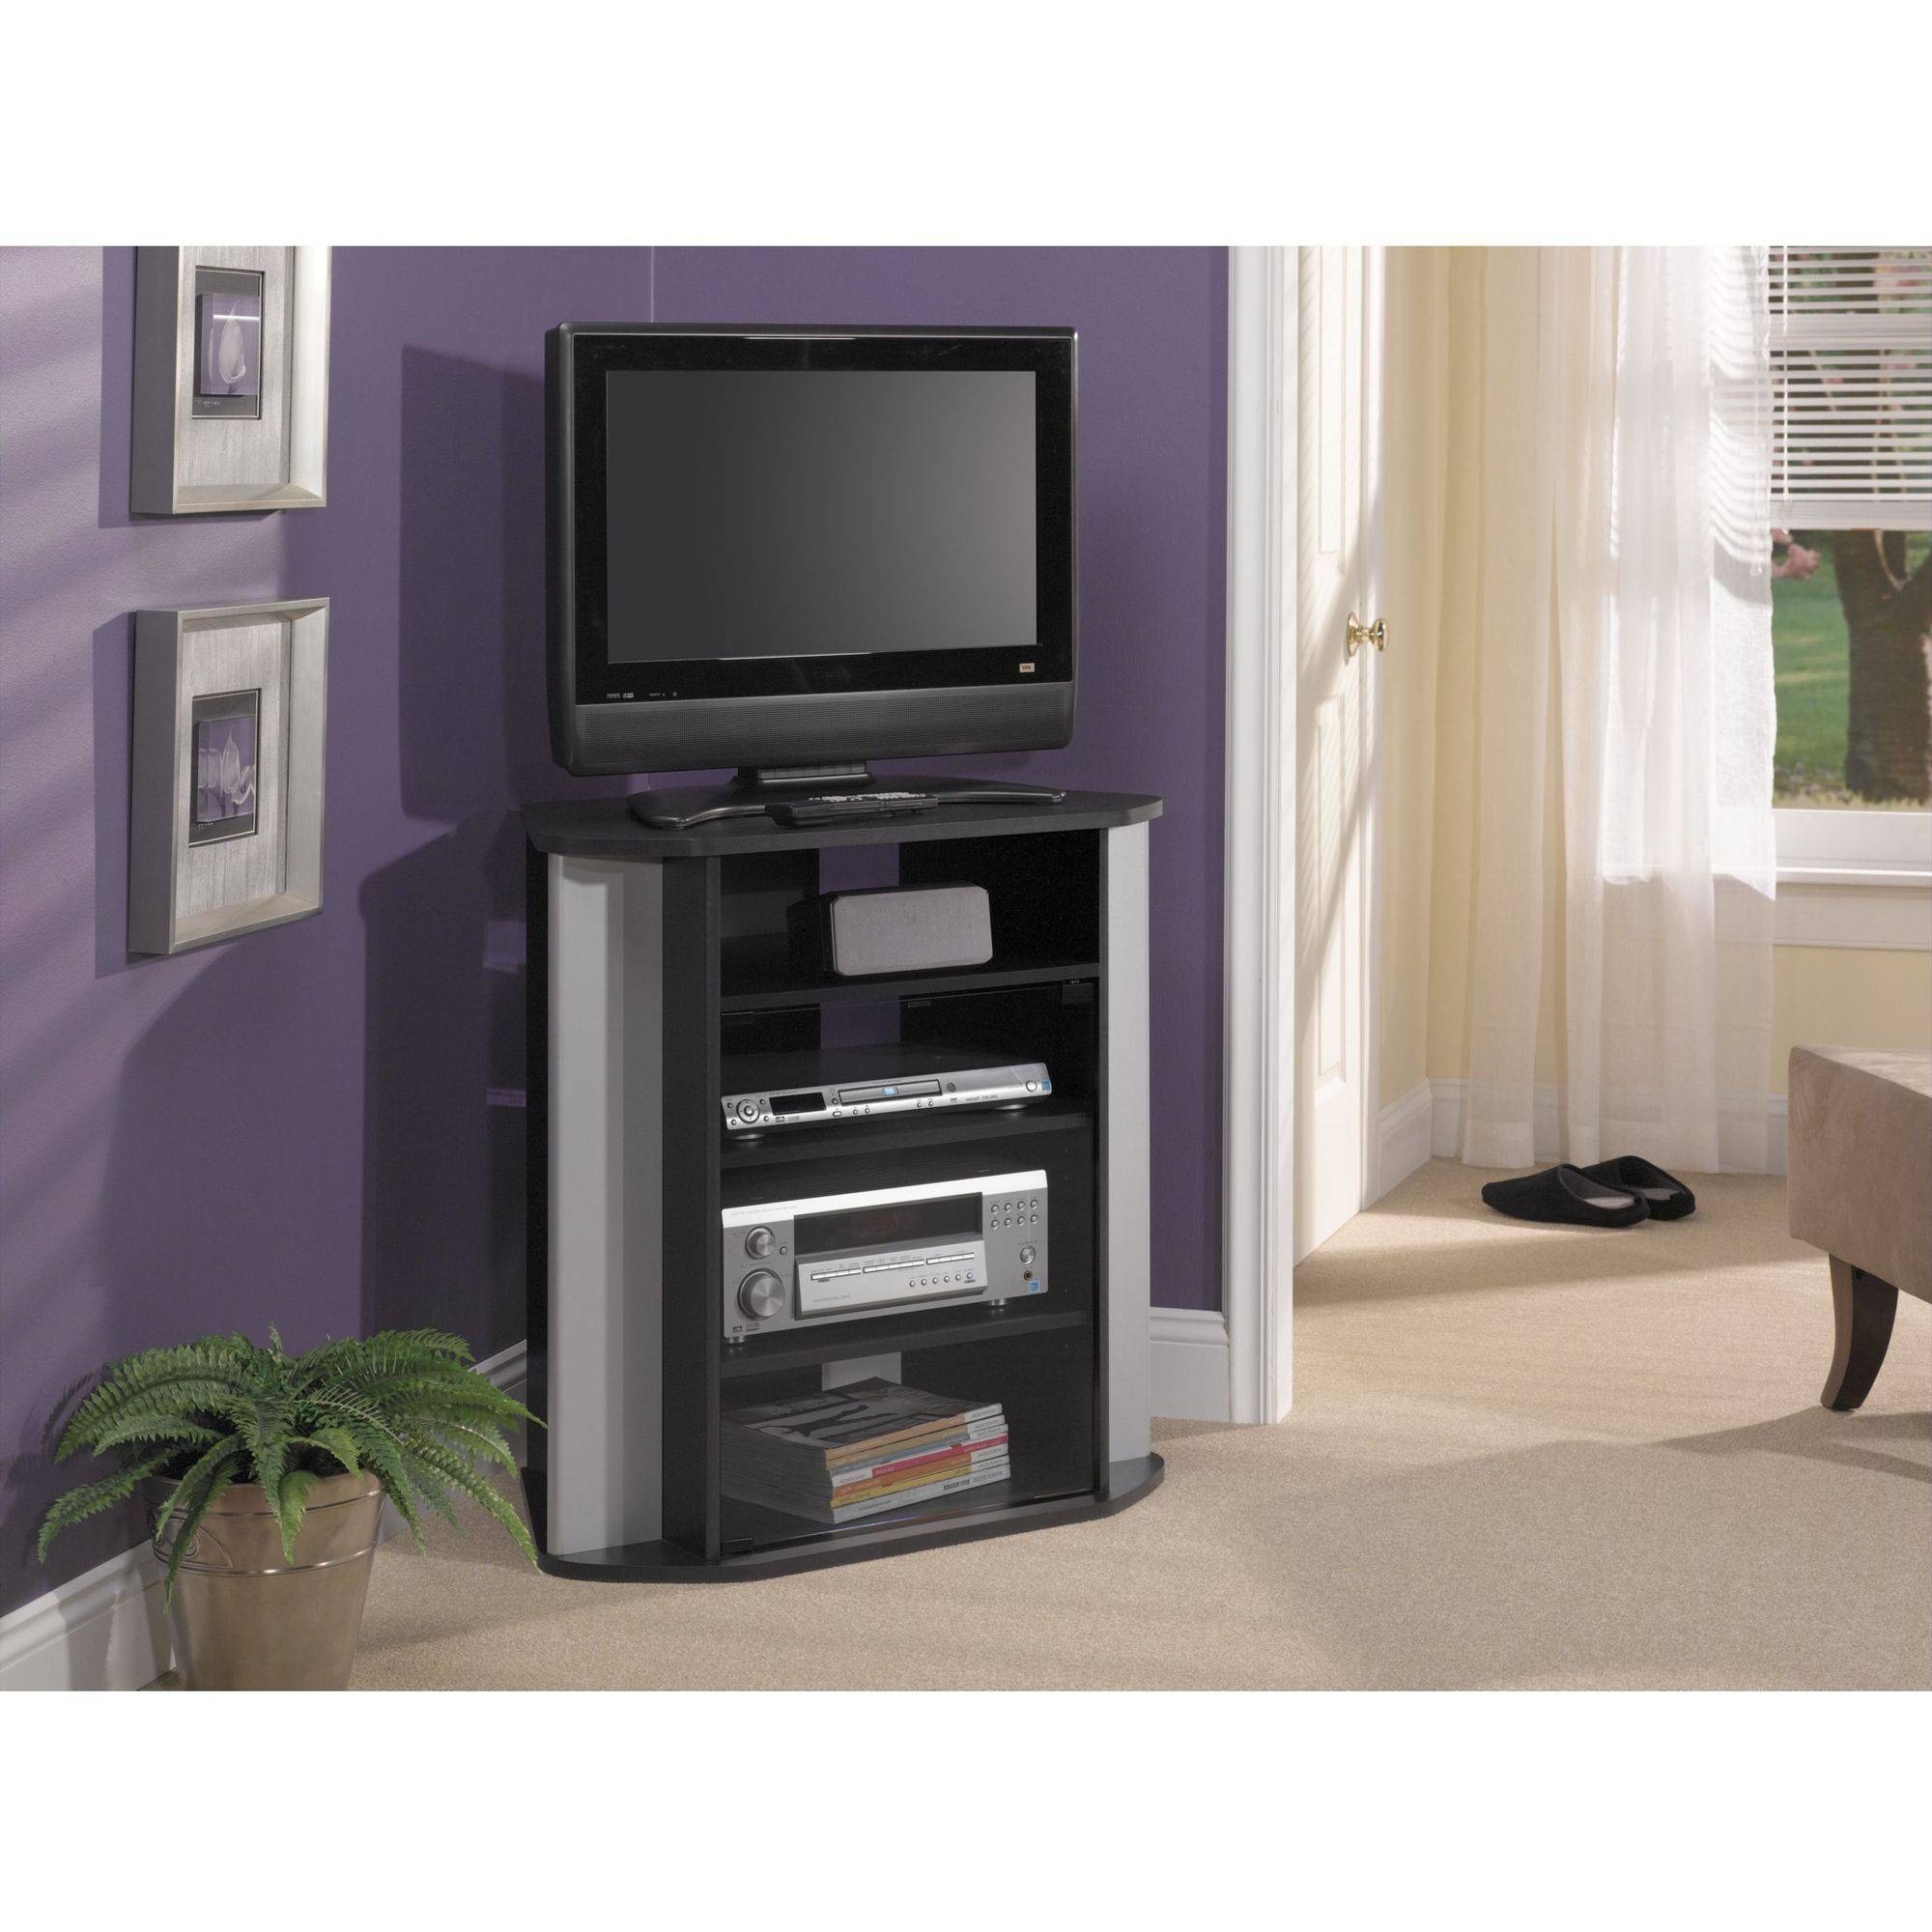 Most Recently Released Furniture: Wonderful Mainstays Tv Stand For Home Tv Stand Furniture Inside Tv Stands For Tube Tvs (View 3 of 20)